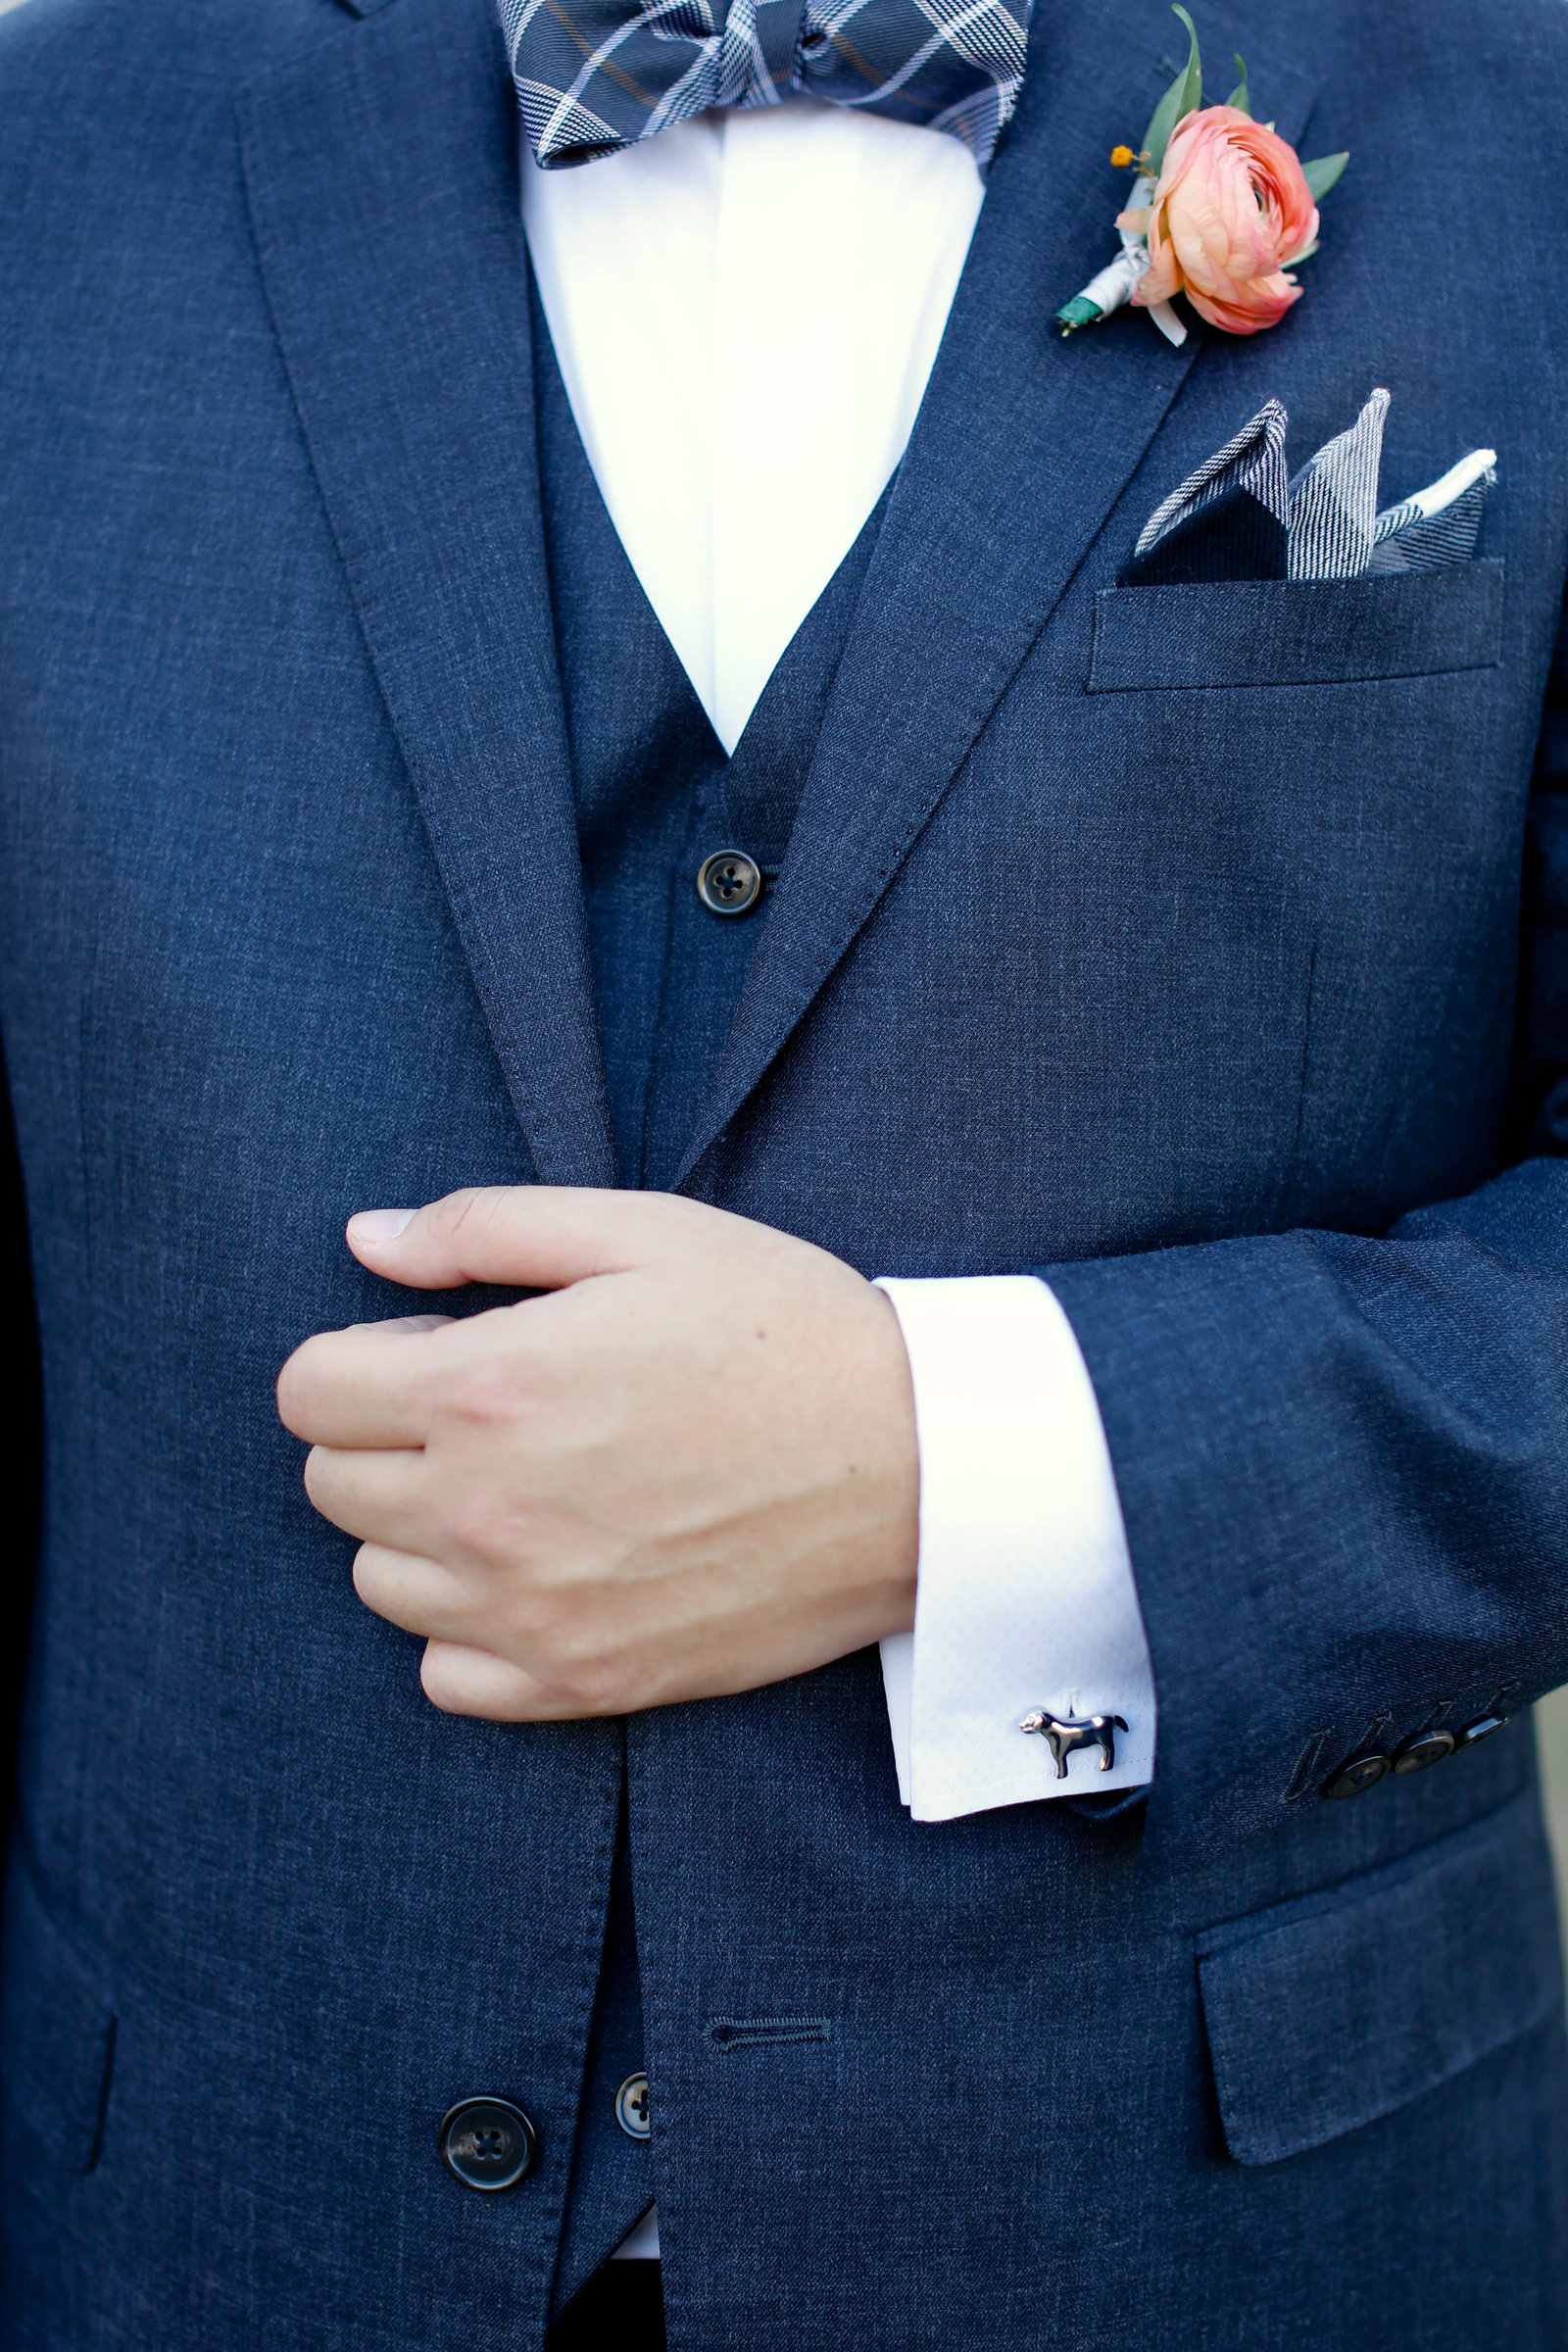 dog cufflink and patterned bowtie on groom